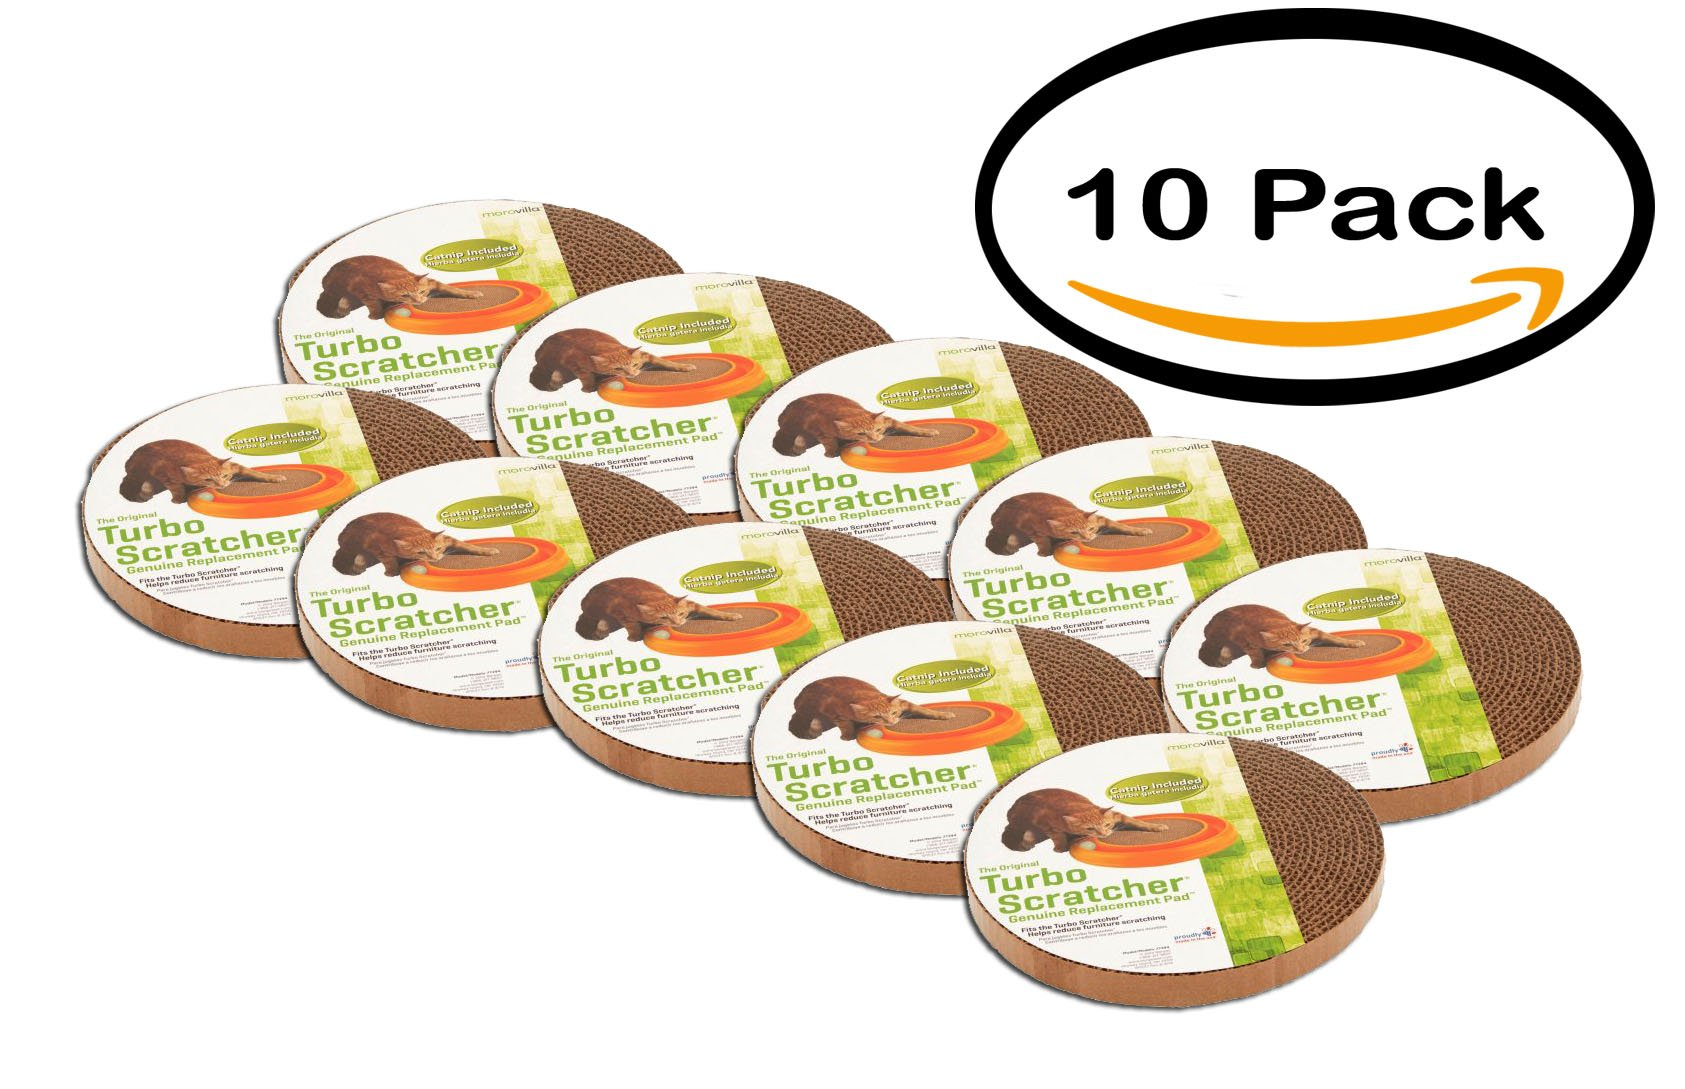 PACK OF 10 - Morovilla Turbo Replacement Pads